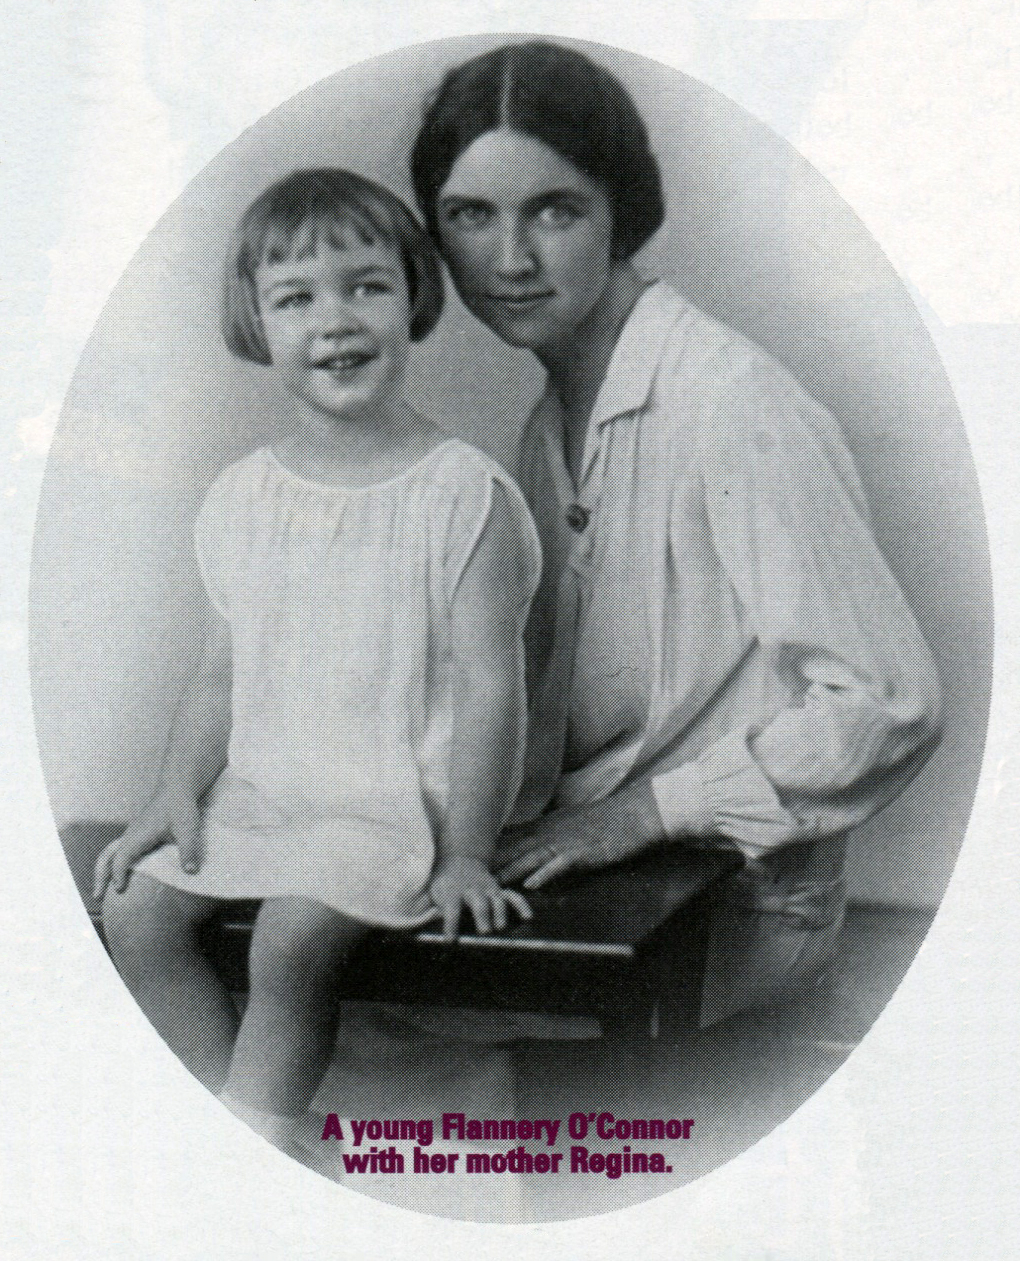 A young Flannery O'Connor with her mother Regina.  Photo courtesy Flannery O'Connor, Ina Dillard Russell Library, Georgia College and State University, Milledgevillage, Georgia. Originally printed in Irish America (March / April 1998).